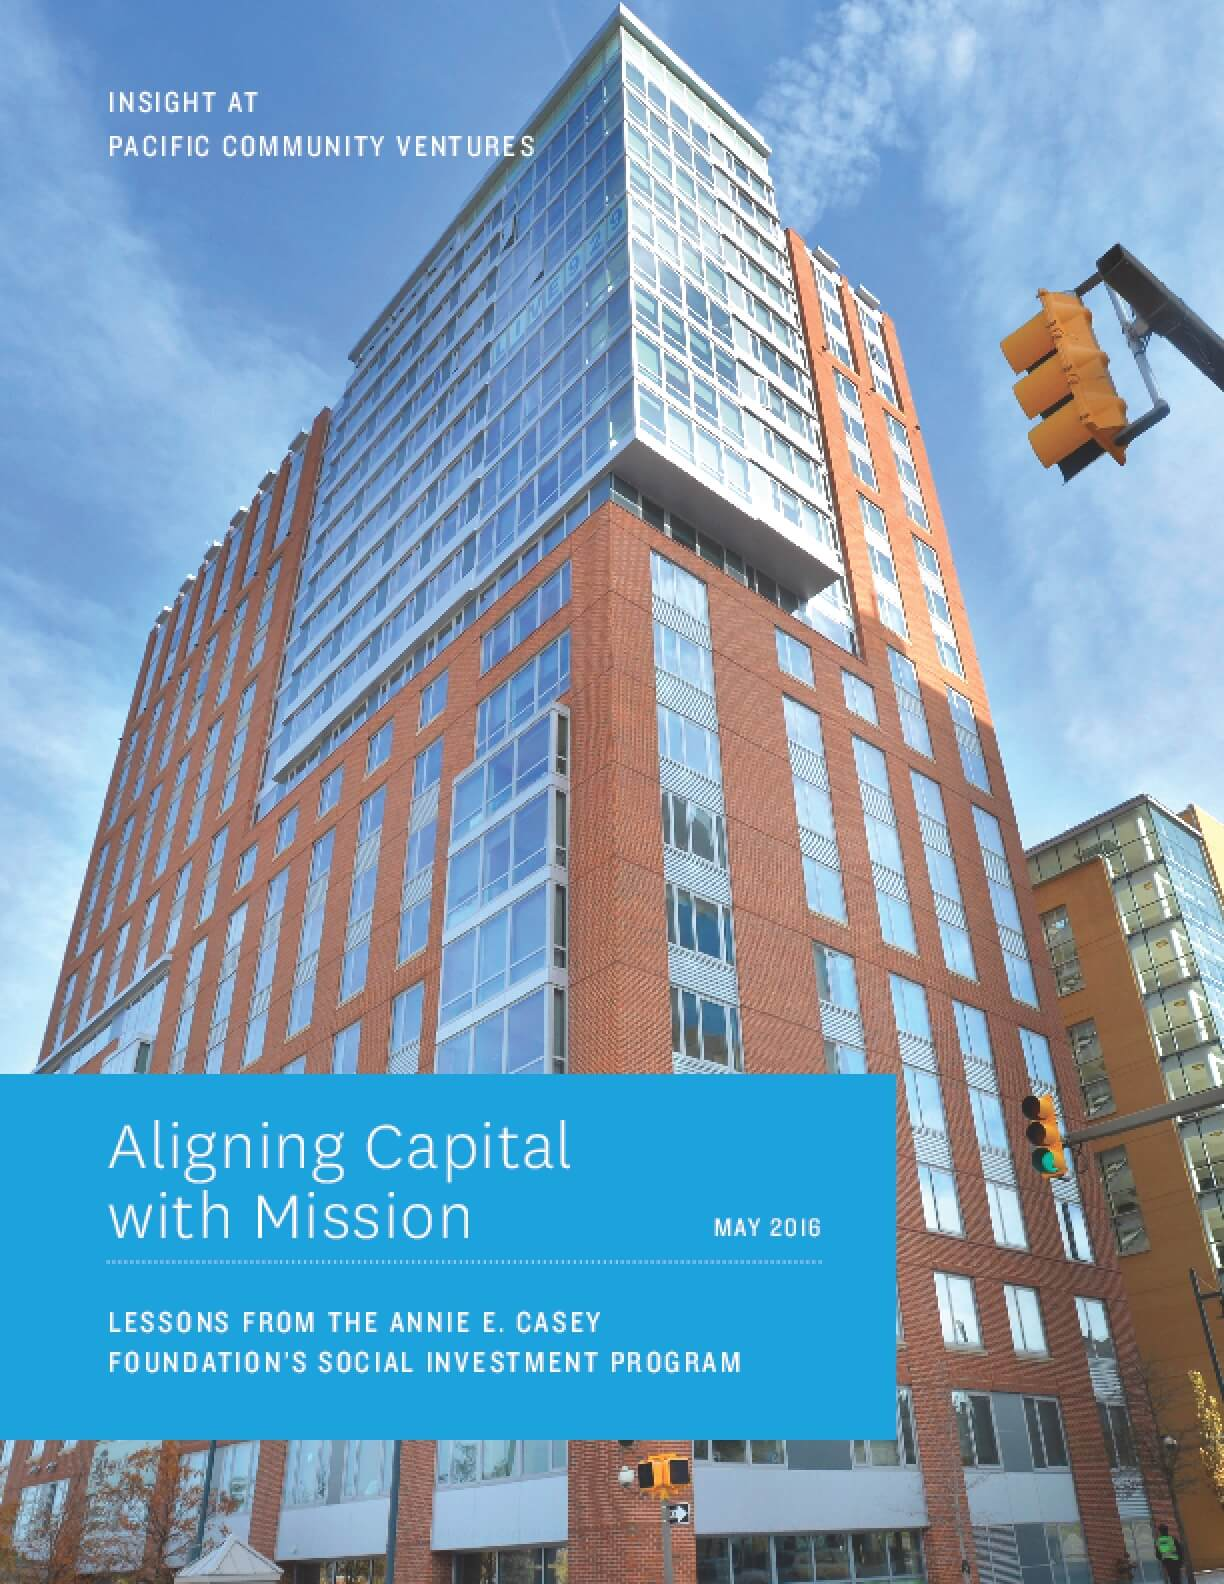 Aligning Capital With Mission: Lessons from the Annie E. Casey Foundation's Social Investment Program